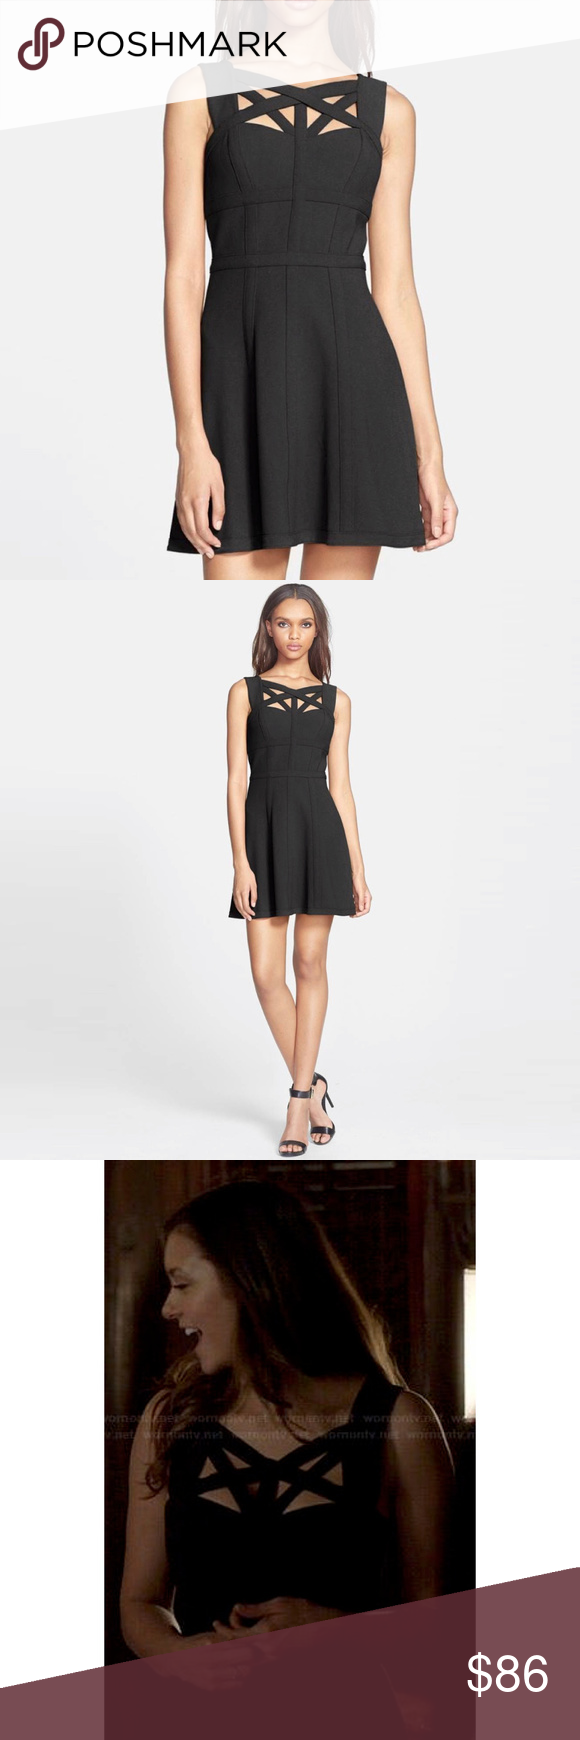 NWOT BCBG MAXAZRIA Black Corset A-Line Dress | Black corset, Black ...